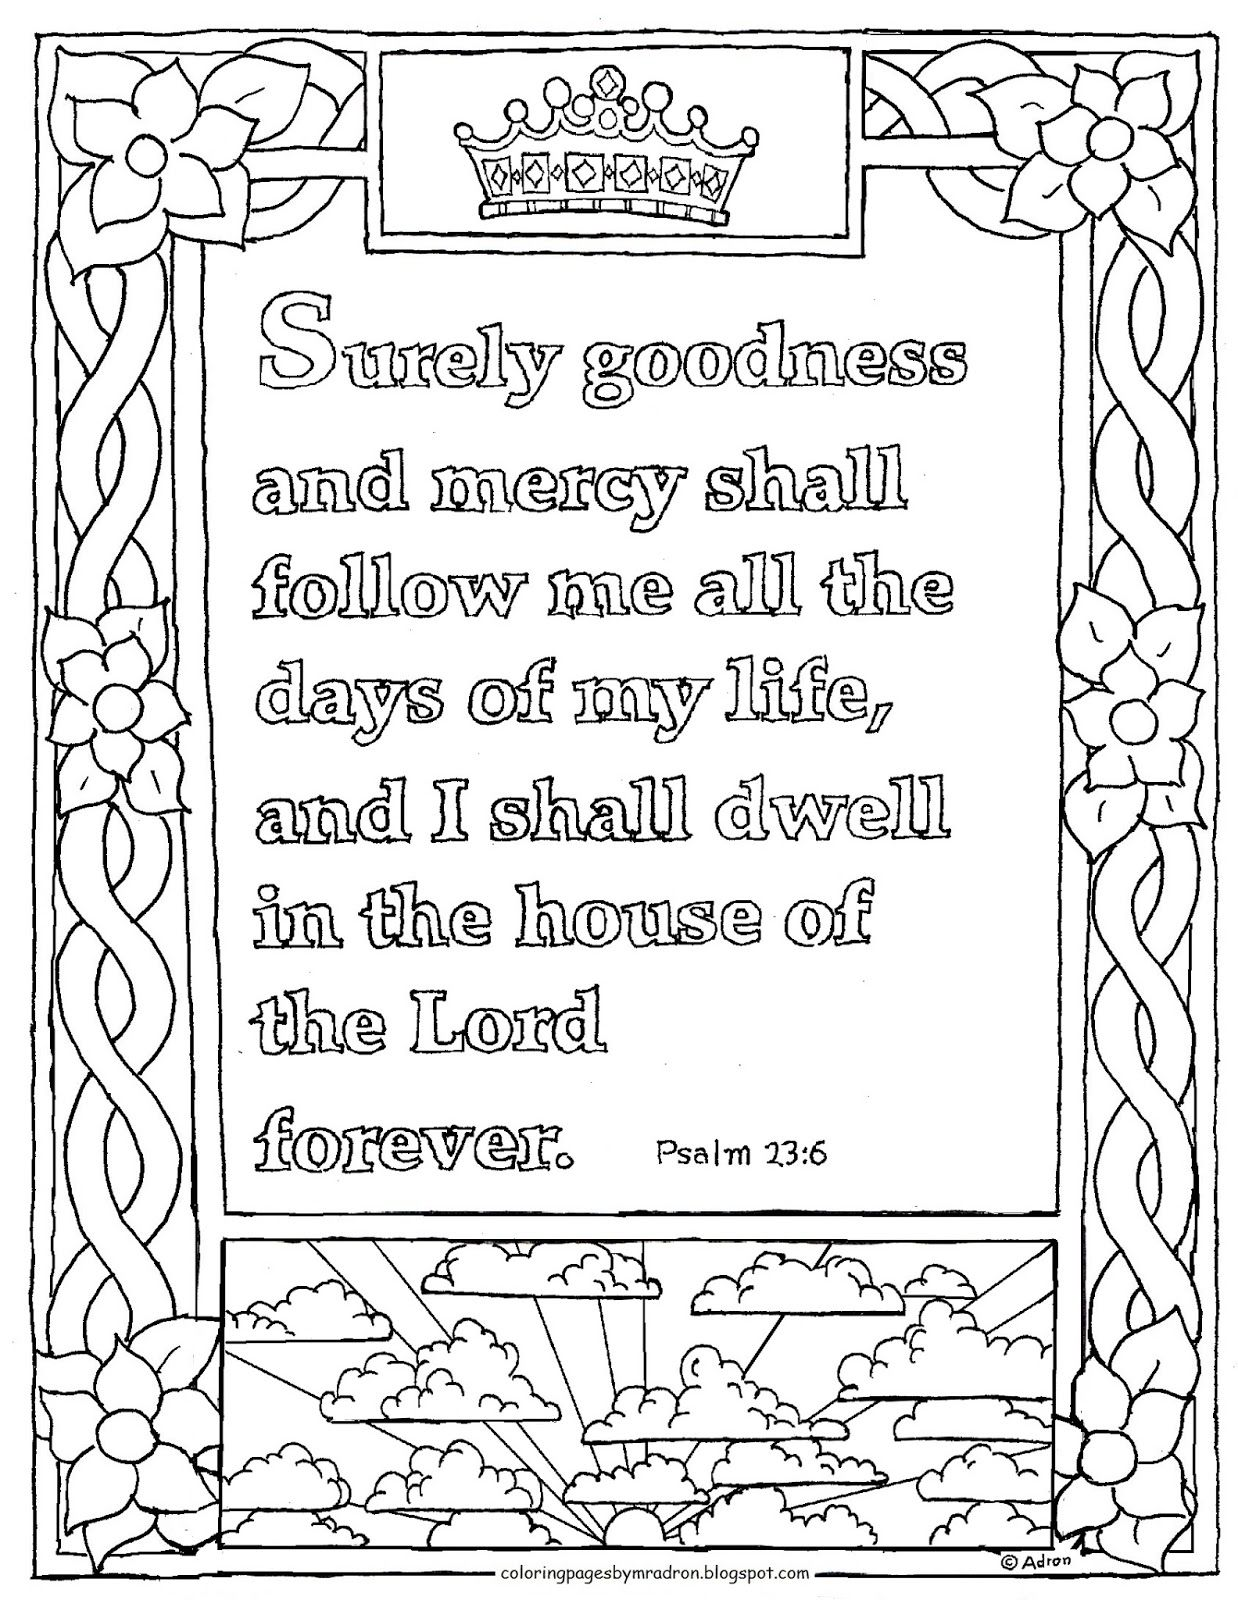 Daniel 6 coloring pages - Coloring Pages For Kids By Mr Adron Printable Psalm 23 6 Coloring Page